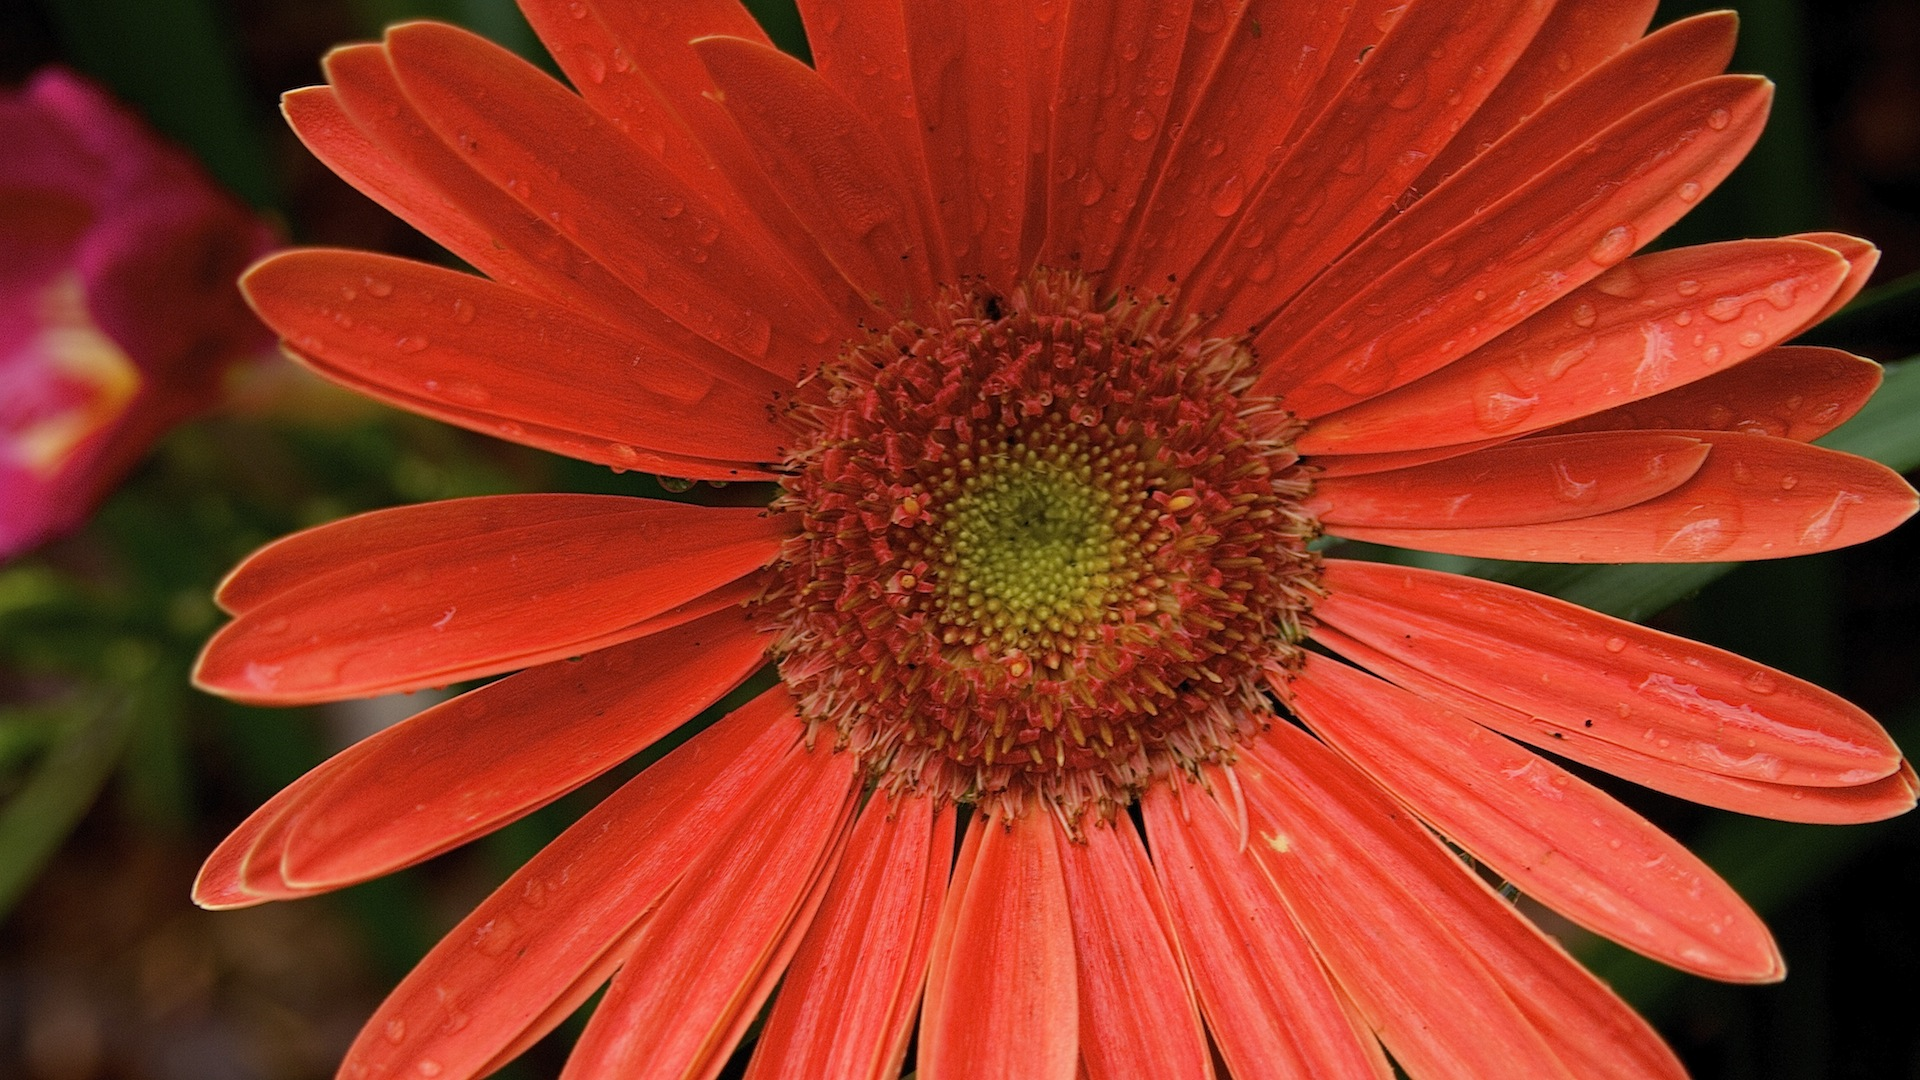 Gerbera Daisy Computer and Smartphone Wallpapers for 1920x1080